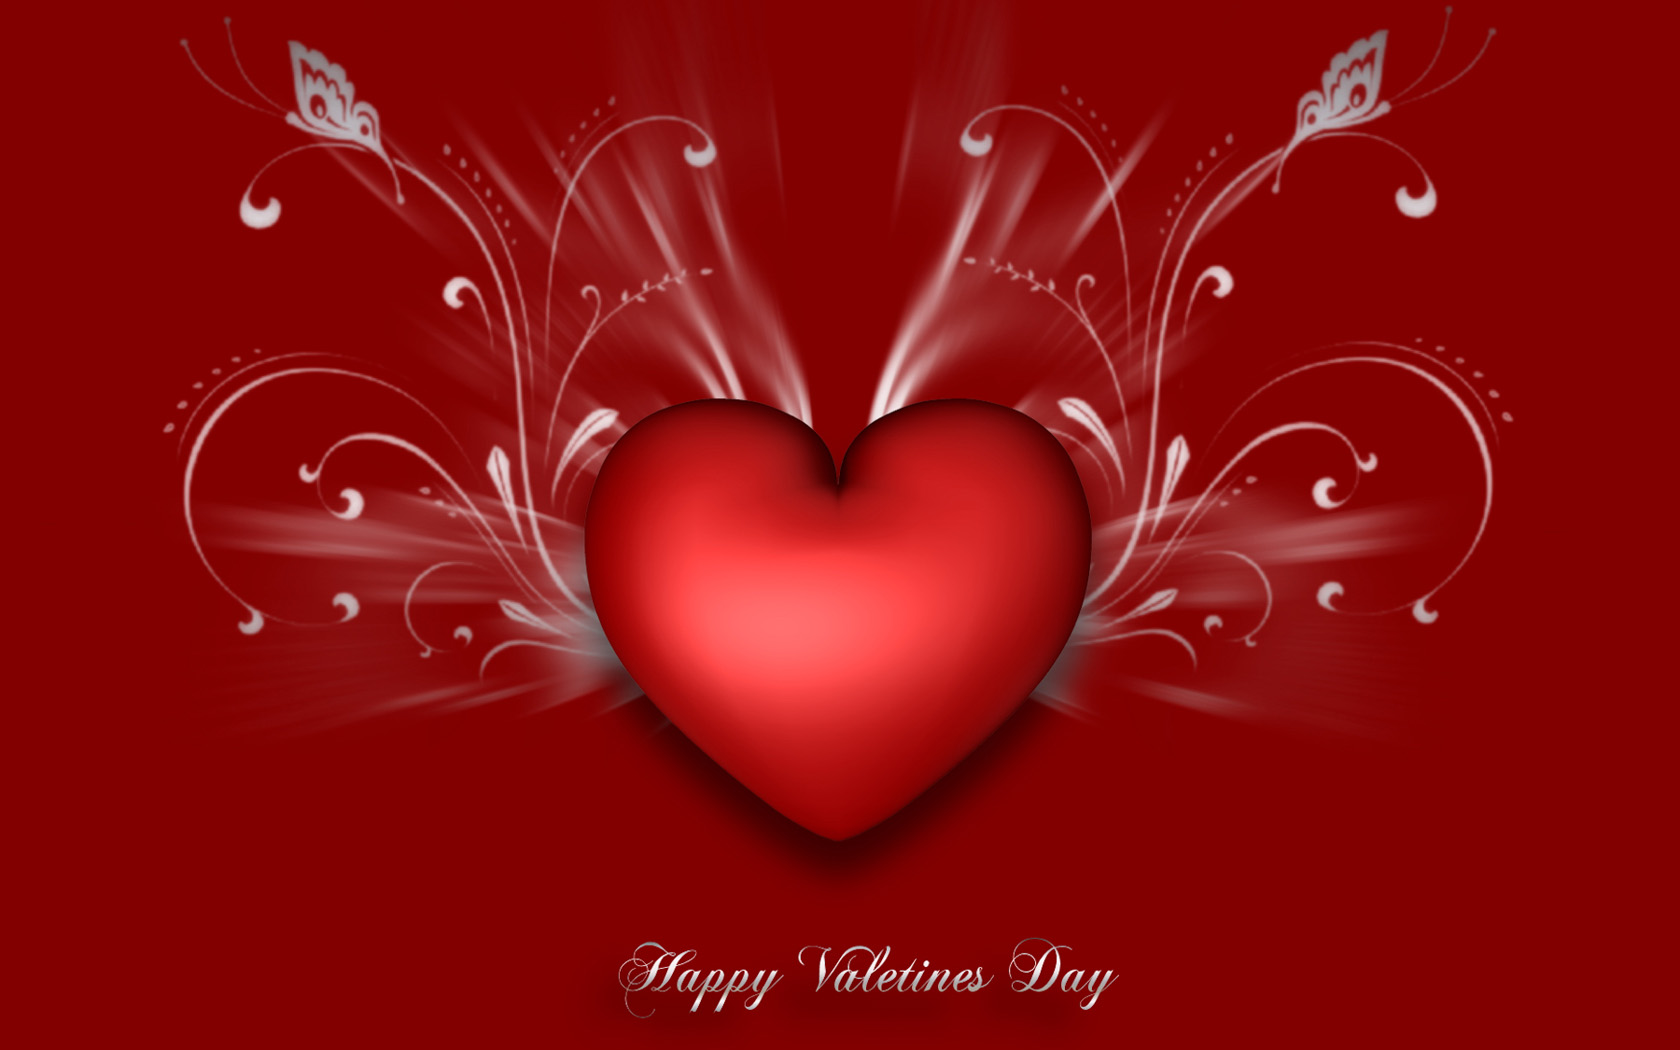 Targeted SMS Offers to Secure Valentines Day Bookings